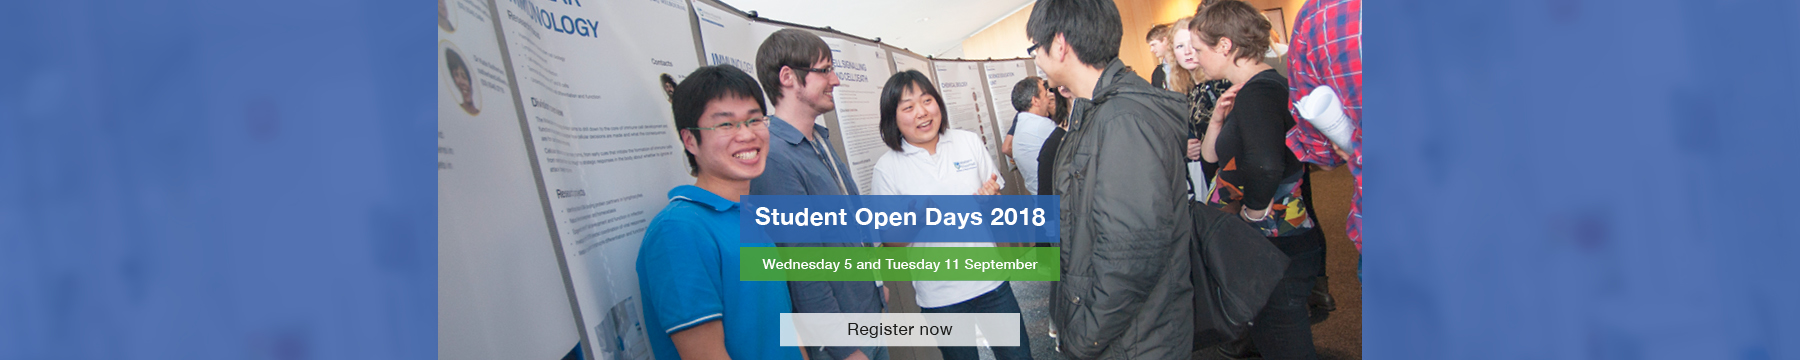 Student Open Days event information